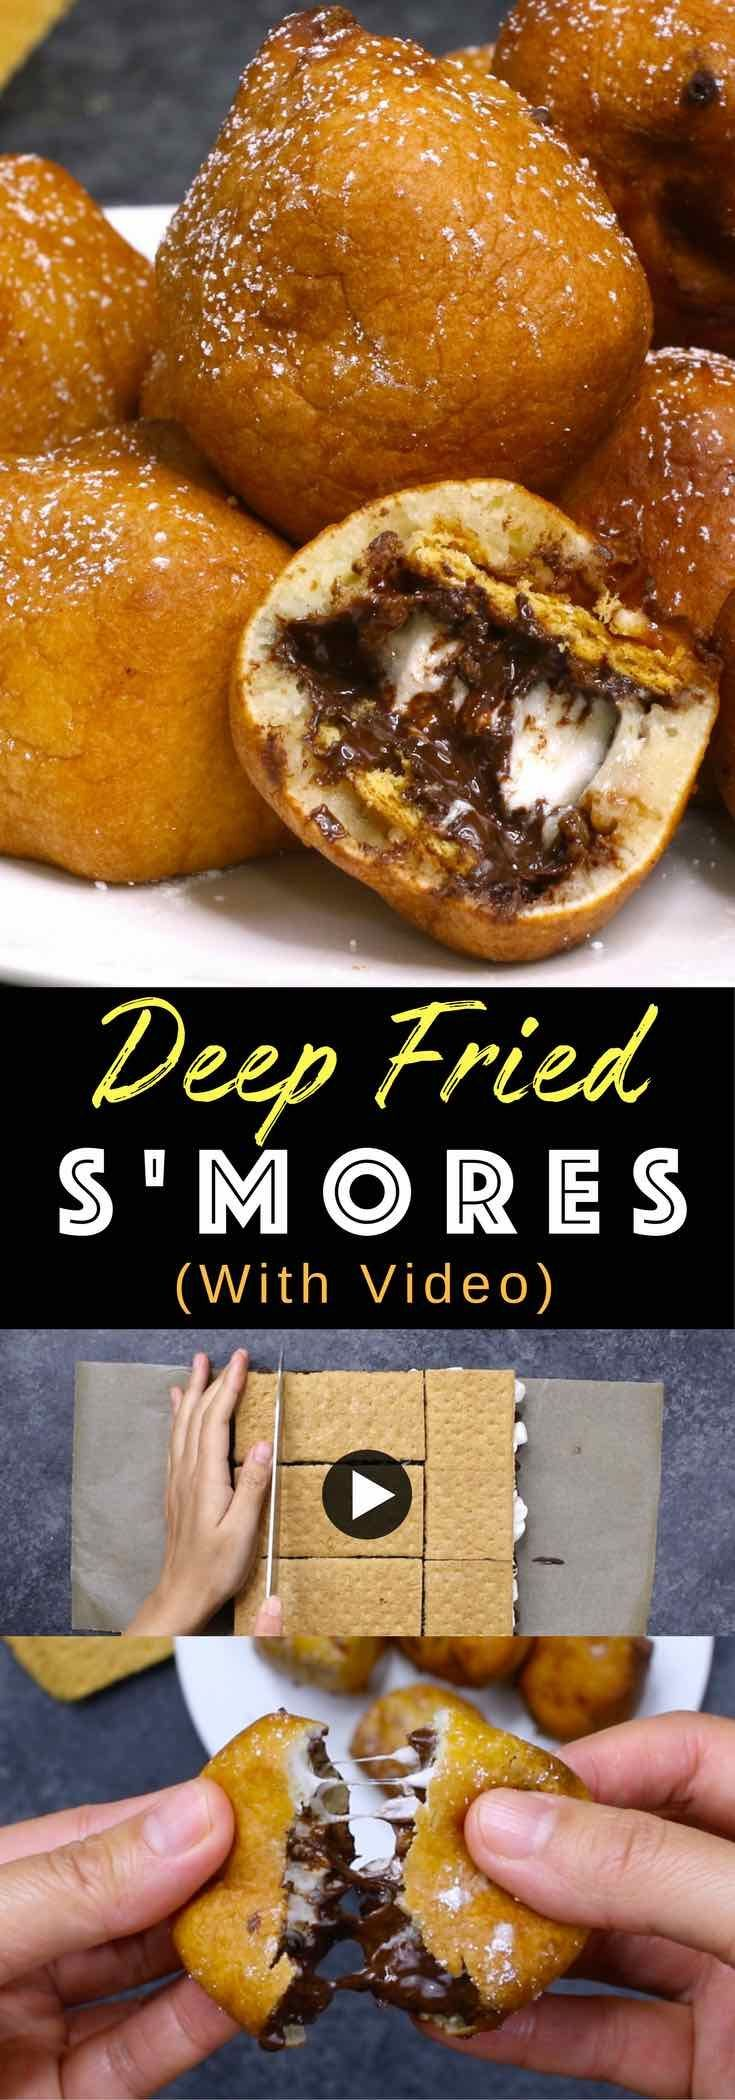 Deep Fried S'mores – OMG seriously one of the most delicious dessert! Smores dipped in homemade batter, and fried to a fluffy, golden crispy ball with a warm and melty chocolate chips and marshmallow inside. Quick and easy recipe. Perfect for party desserts. No bake, vegetarian. Video recipe.